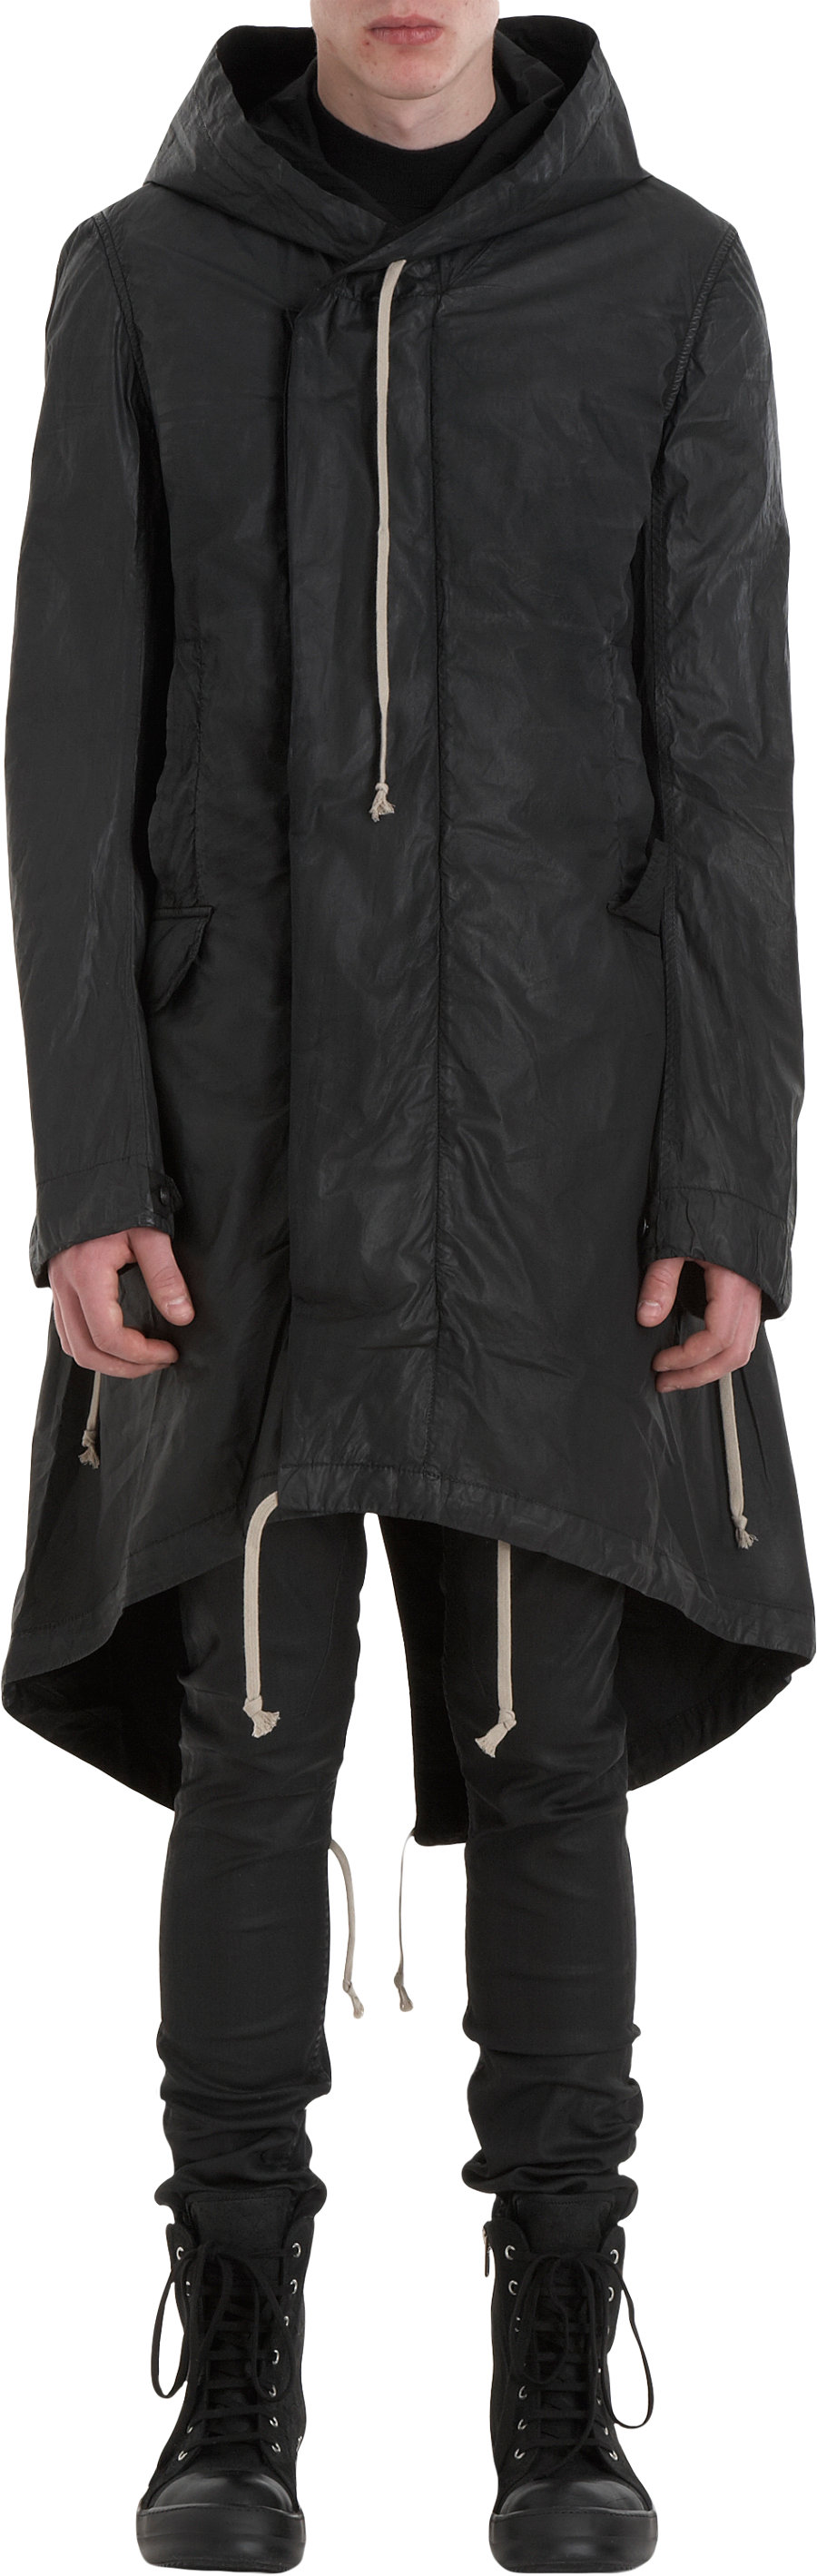 drkshdw-by-rick-owens-long-hooded-parka-product-1-7546430 ...